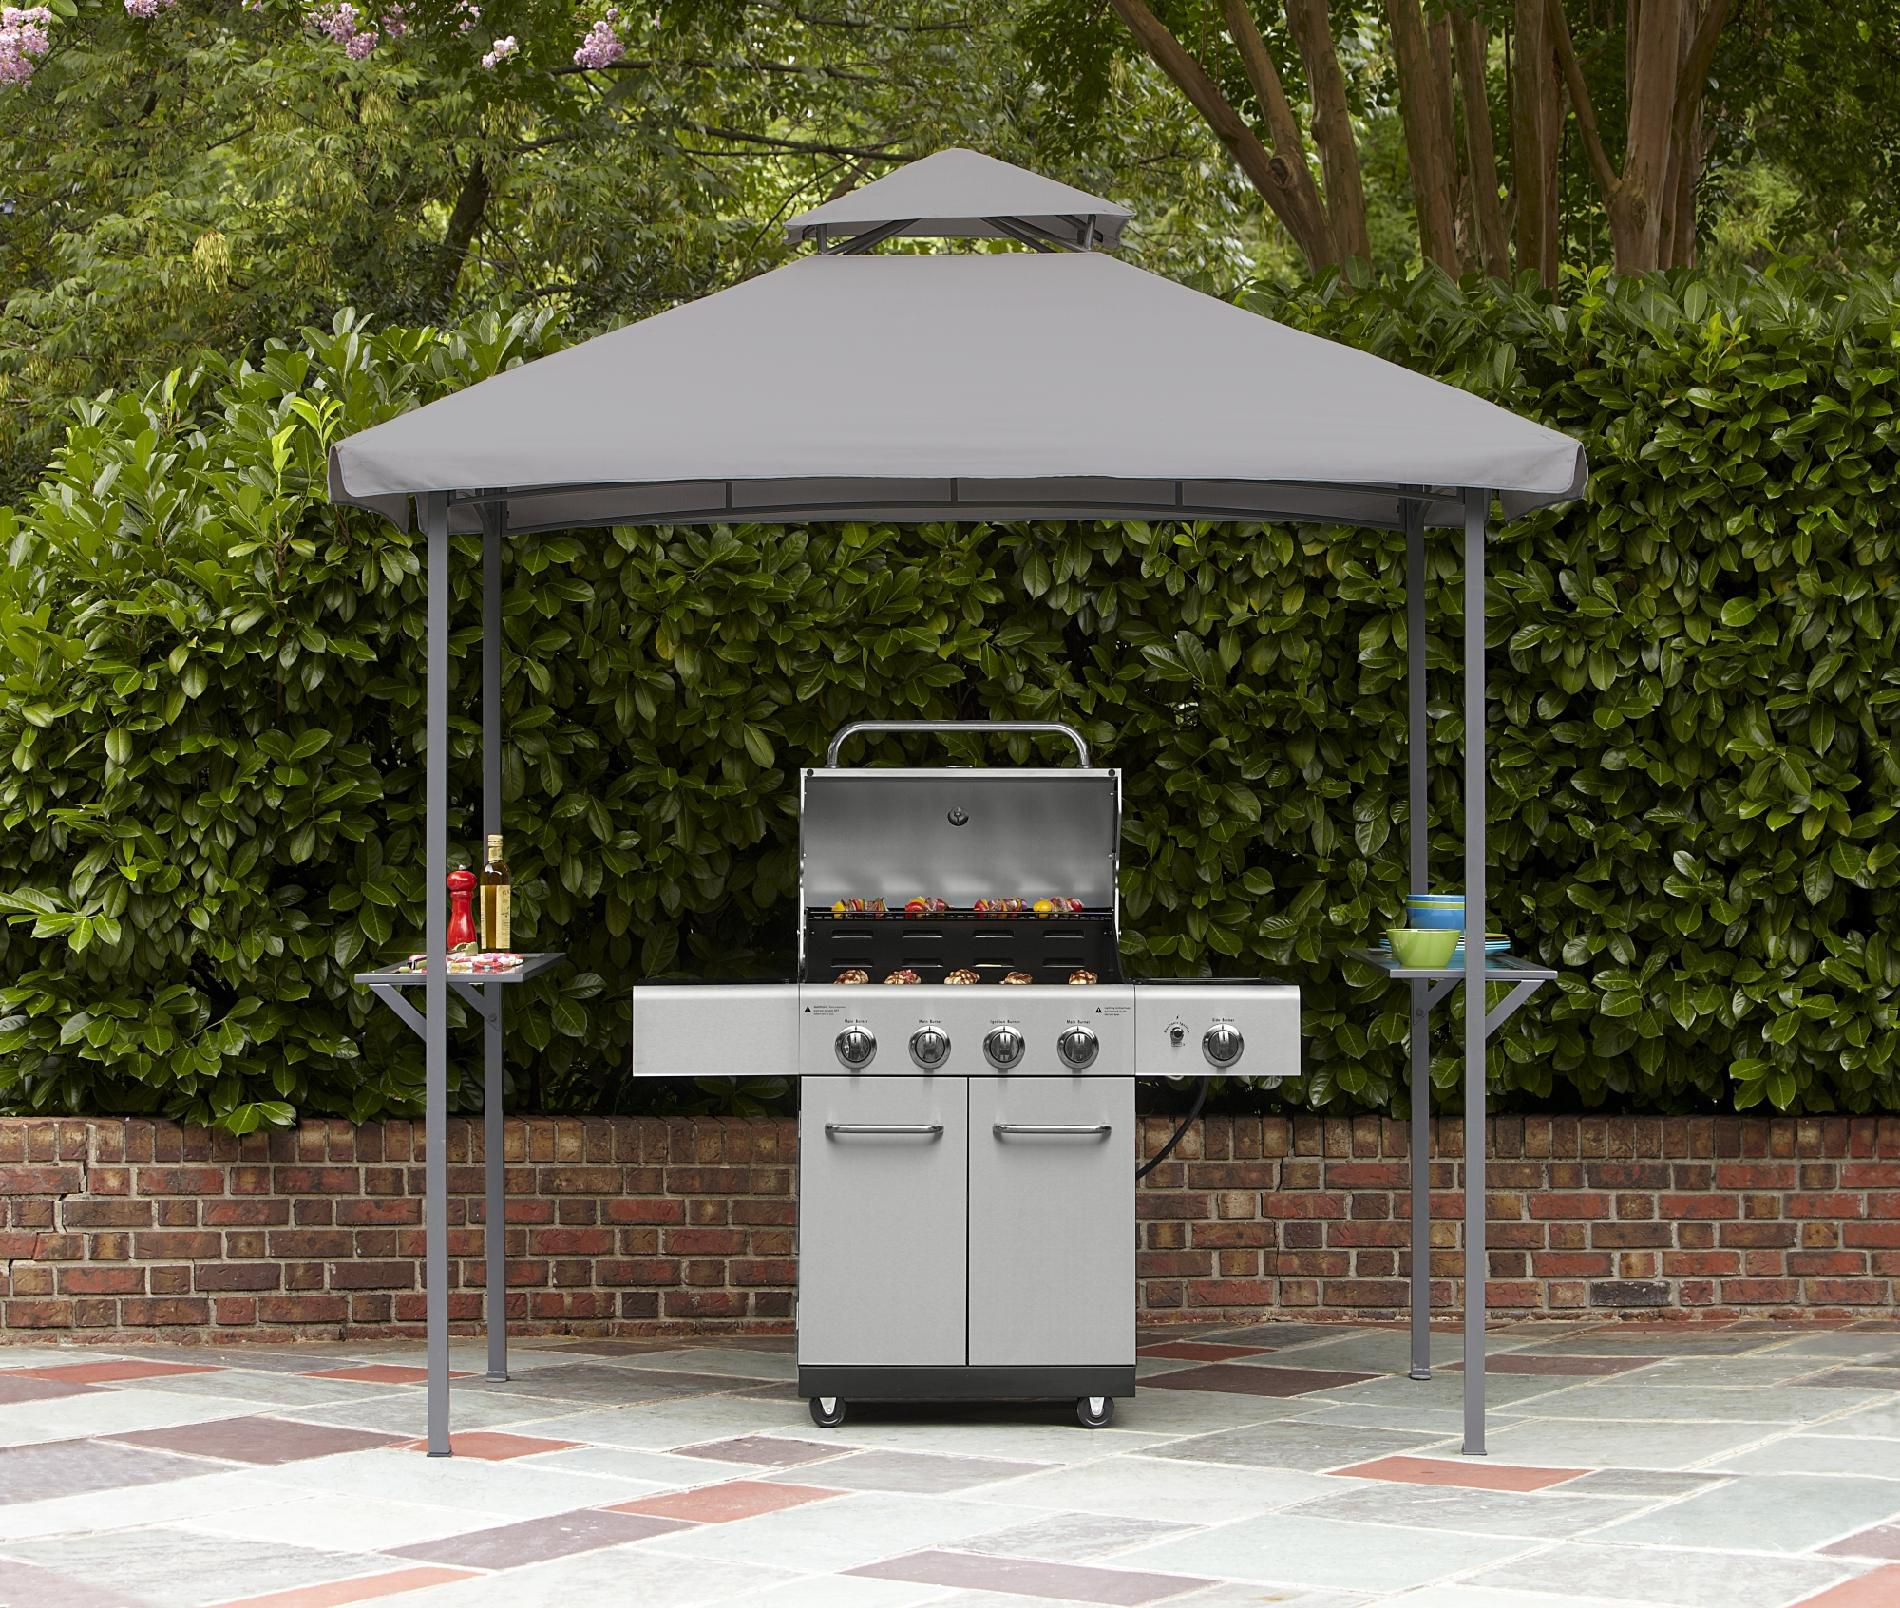 Garden Oasis 5'x8' Grill Gazebo with Glass Bar